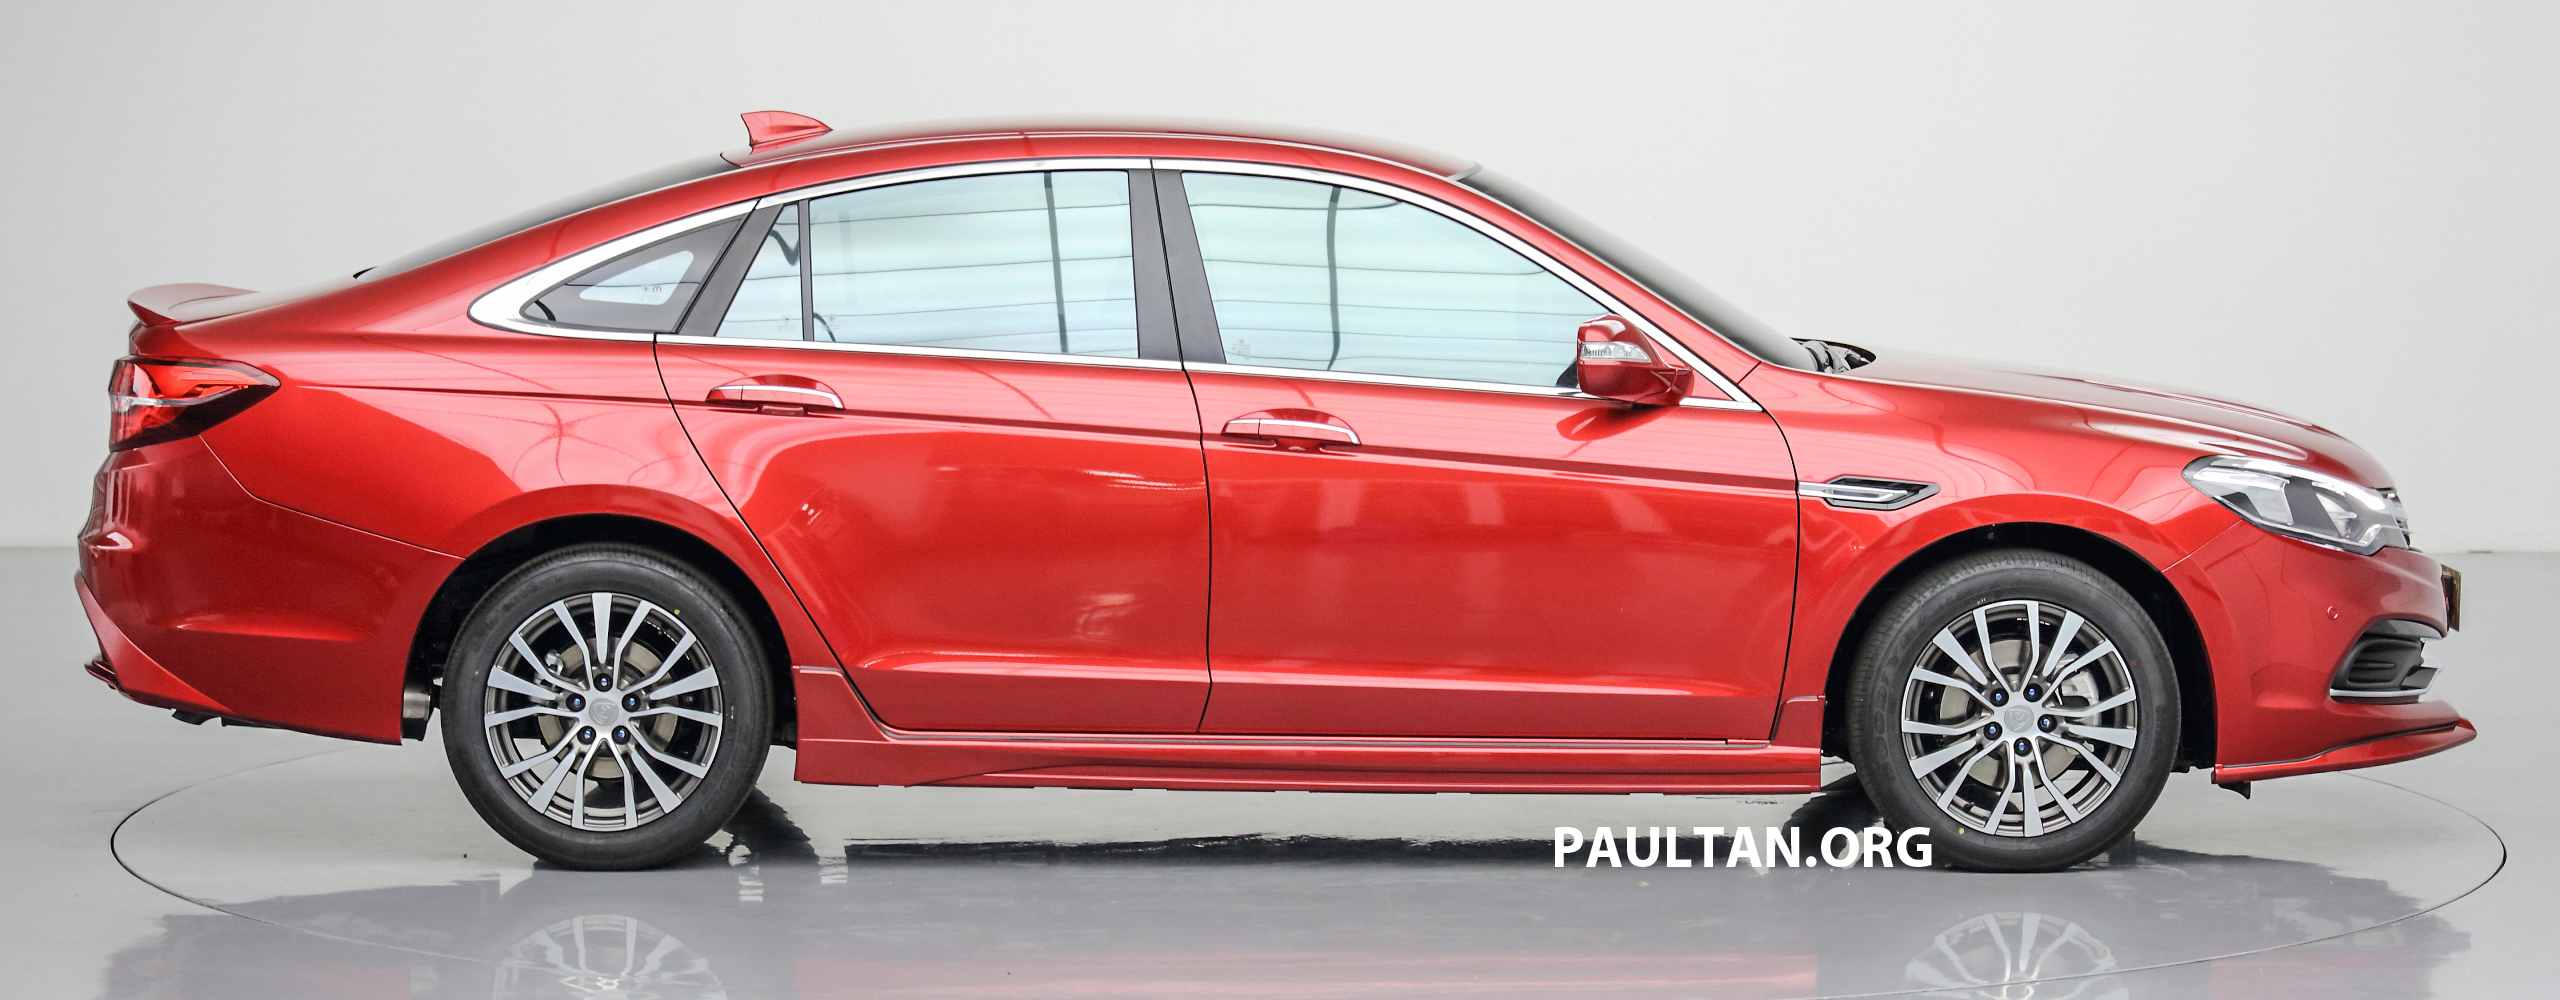 New Proton Perdana officially launched – 2.0L and 2.4L ...